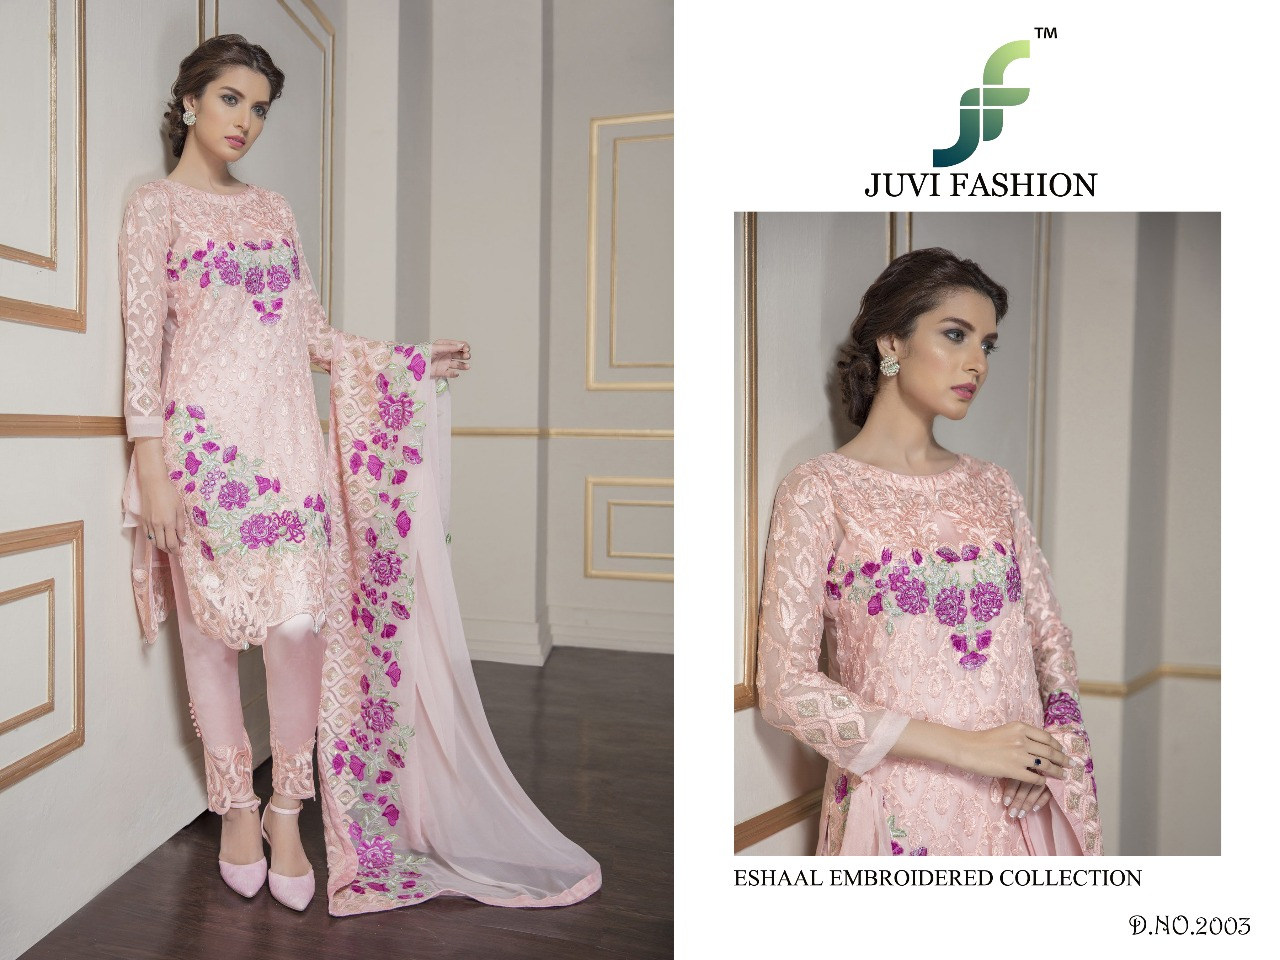 Juvi Fashion Eshaal Embroidered Collection 2003